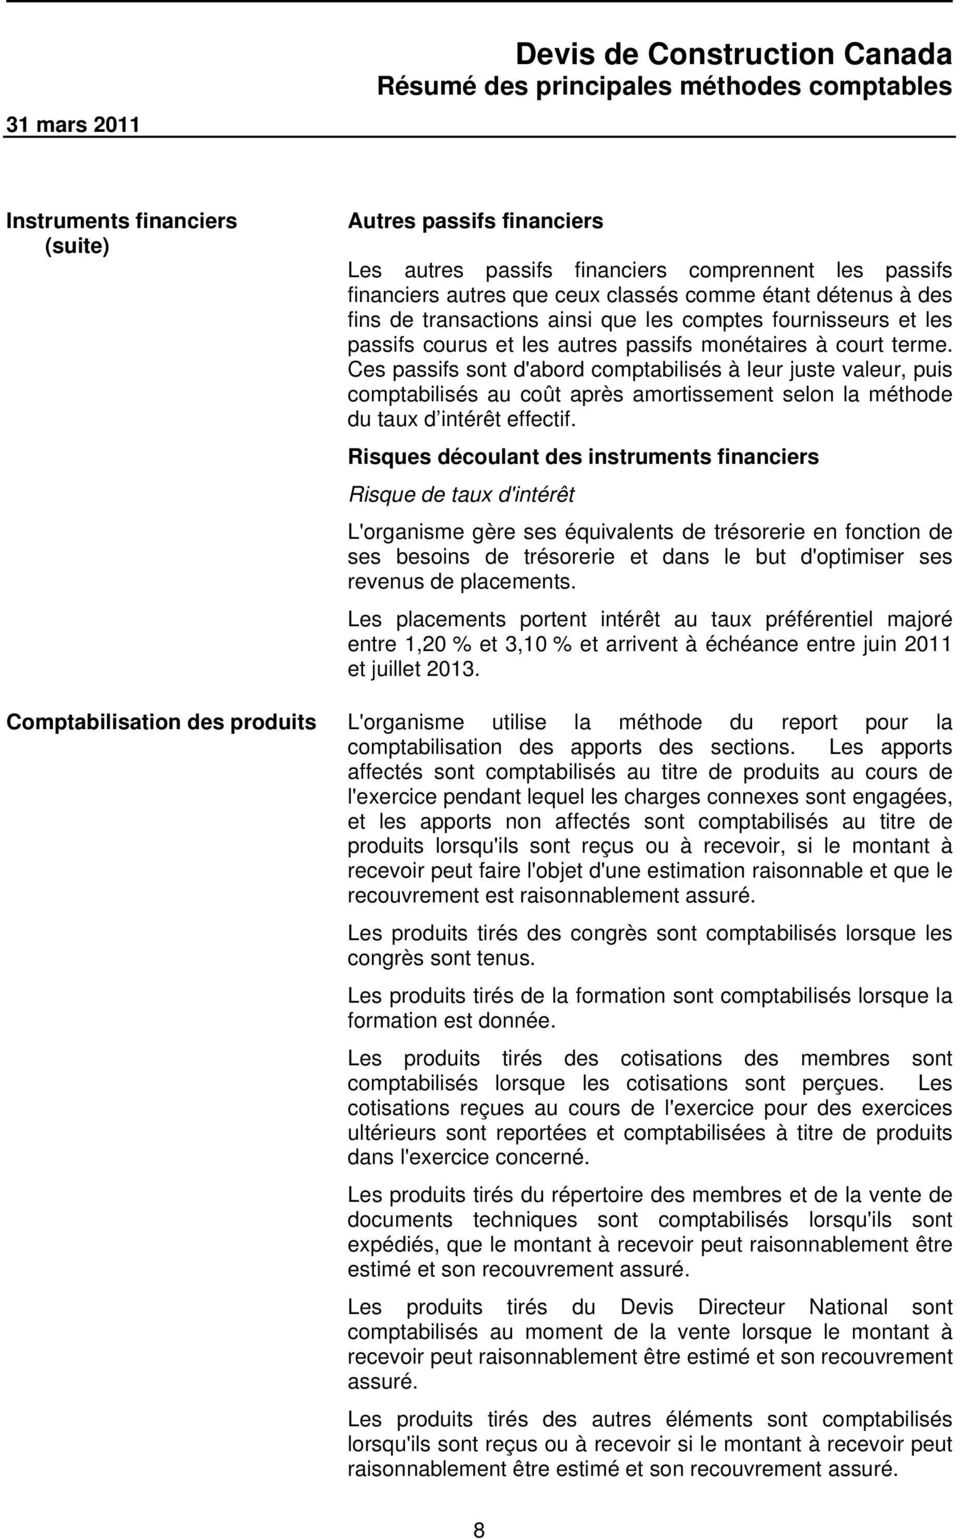 Devis de construction canada pdf for Devis de construction